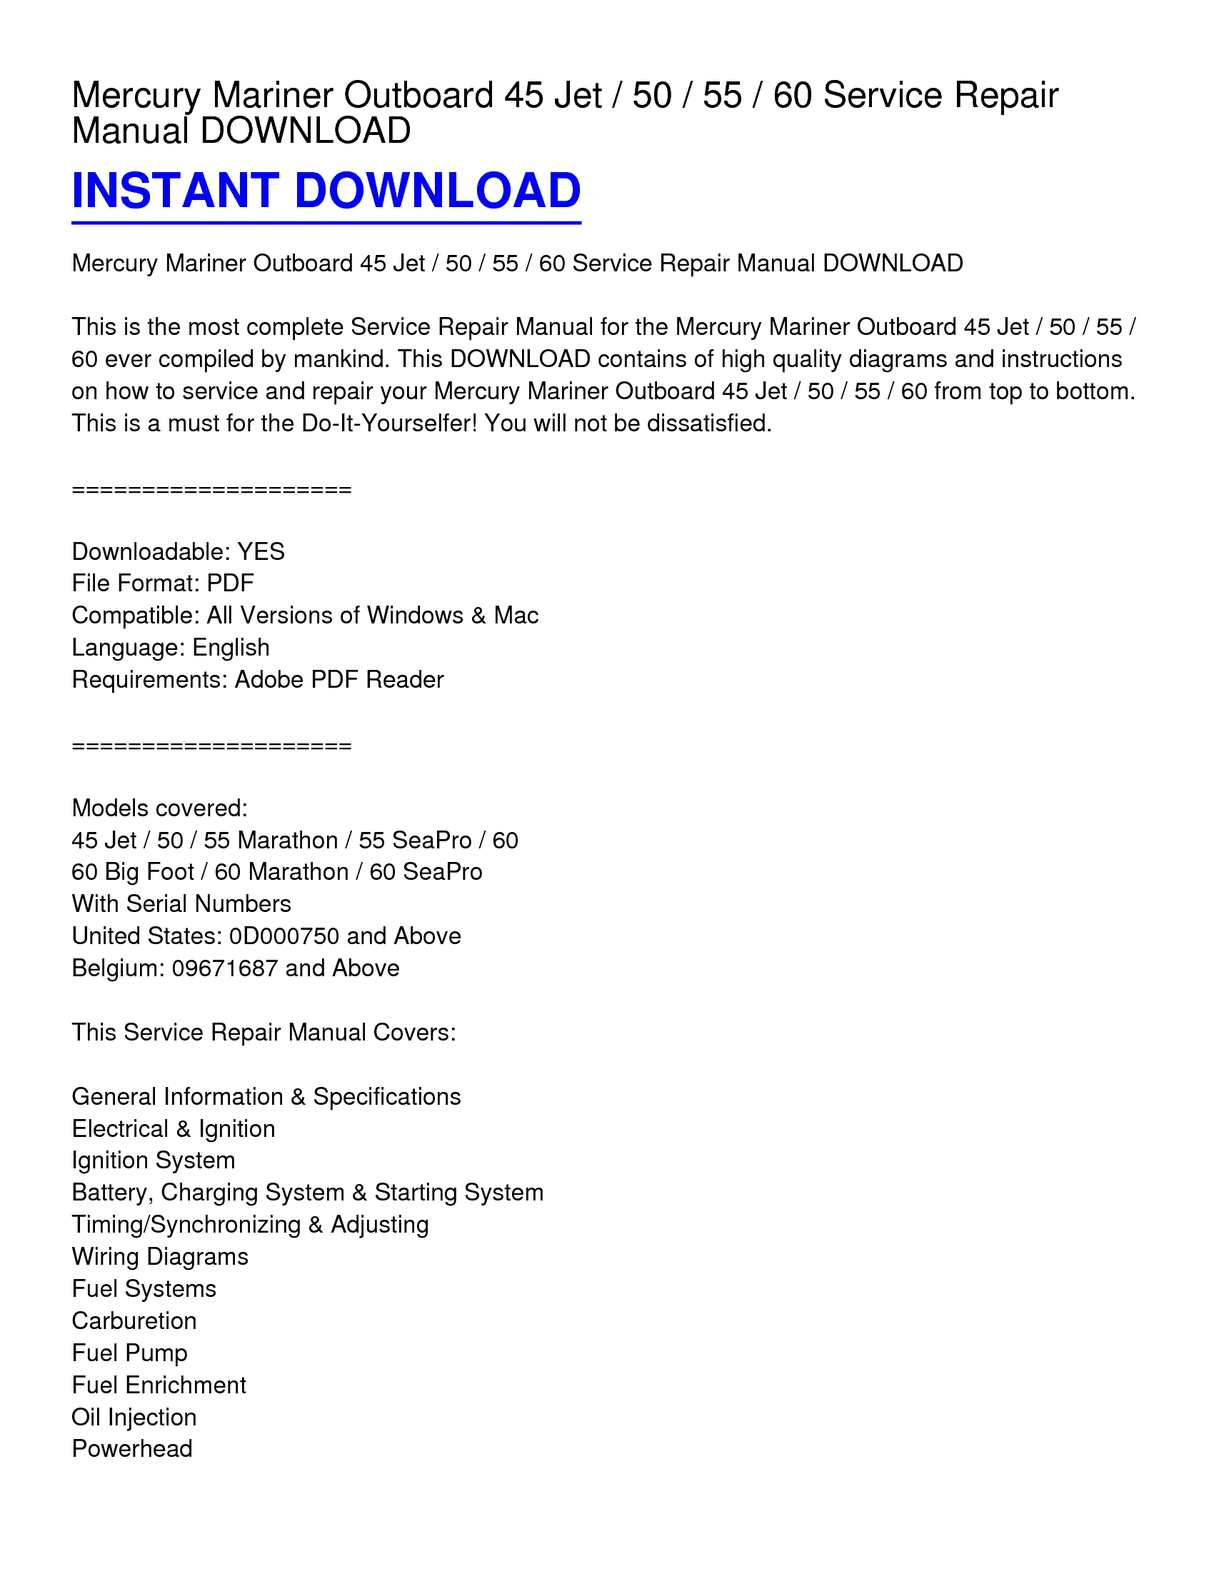 calam o mercury mariner outboard 45 jet 50 55 60 service 75 HP Mariner Outboard Motor calam o mercury mariner outboard 45 jet 50 55 60 service repair manual download